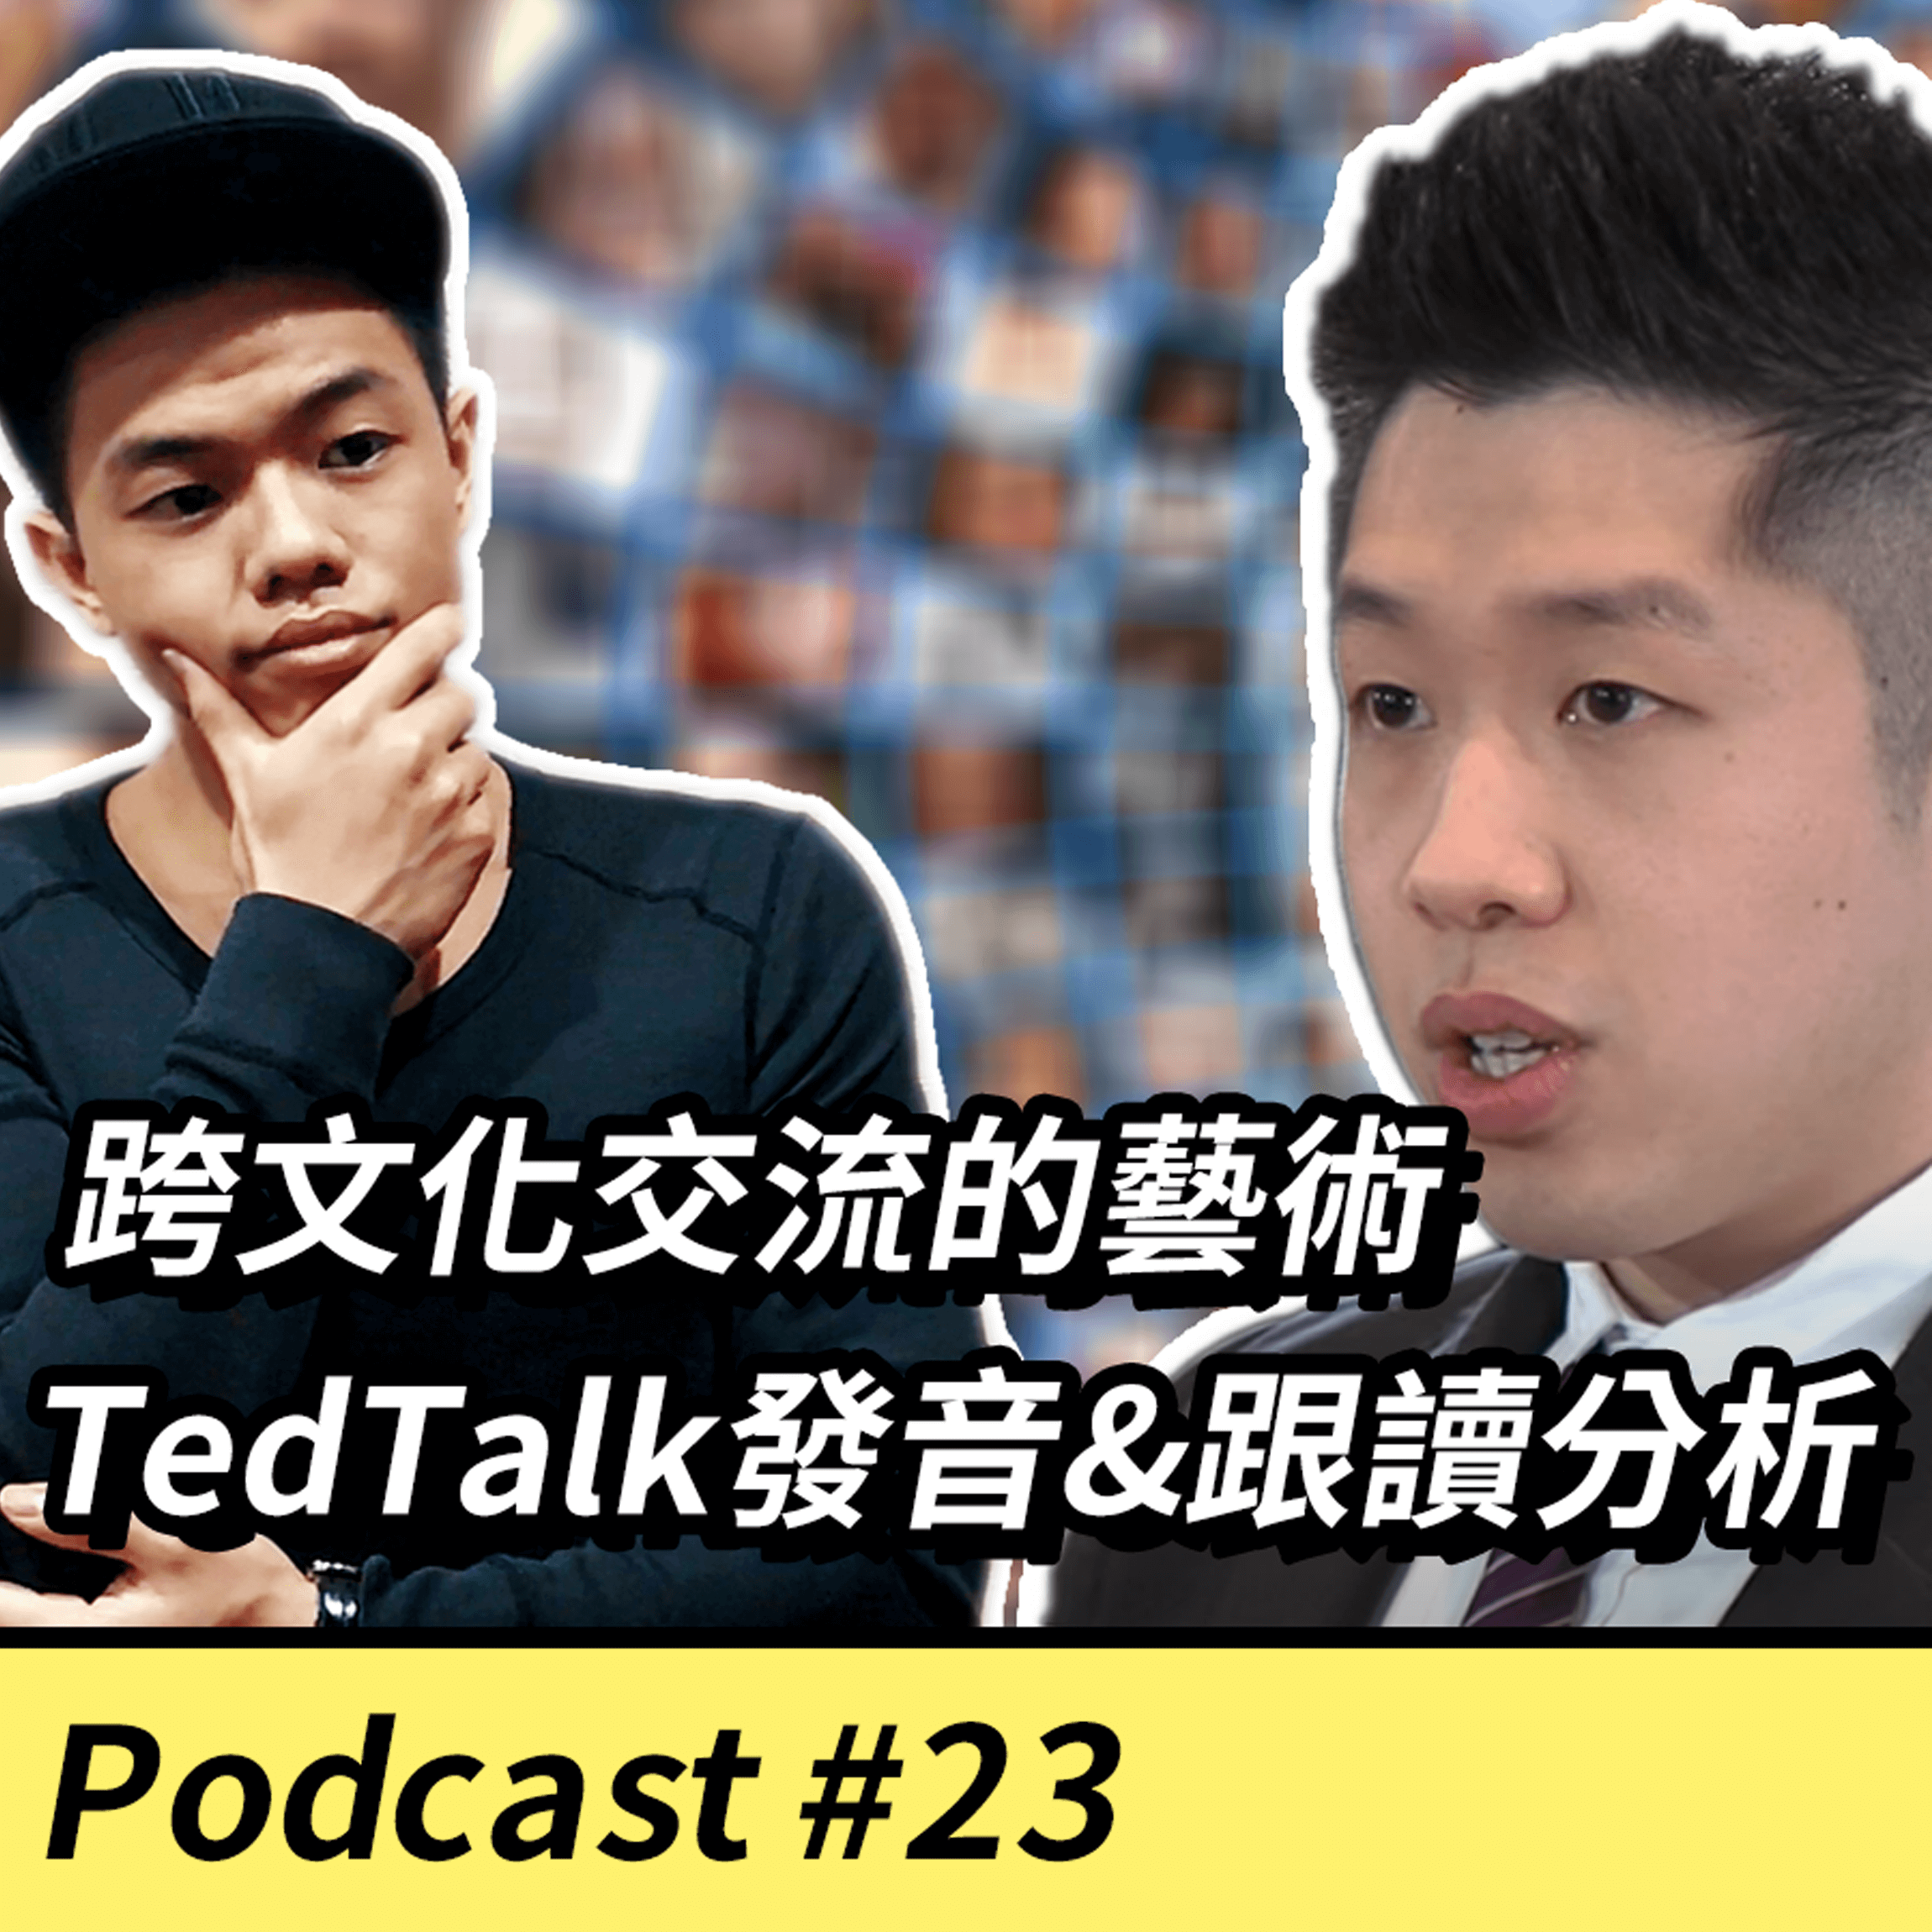 EP23. 【英文溝通】跨文化交流的藝術 by Anthony Hung - TedTalk聽力&跟讀分析